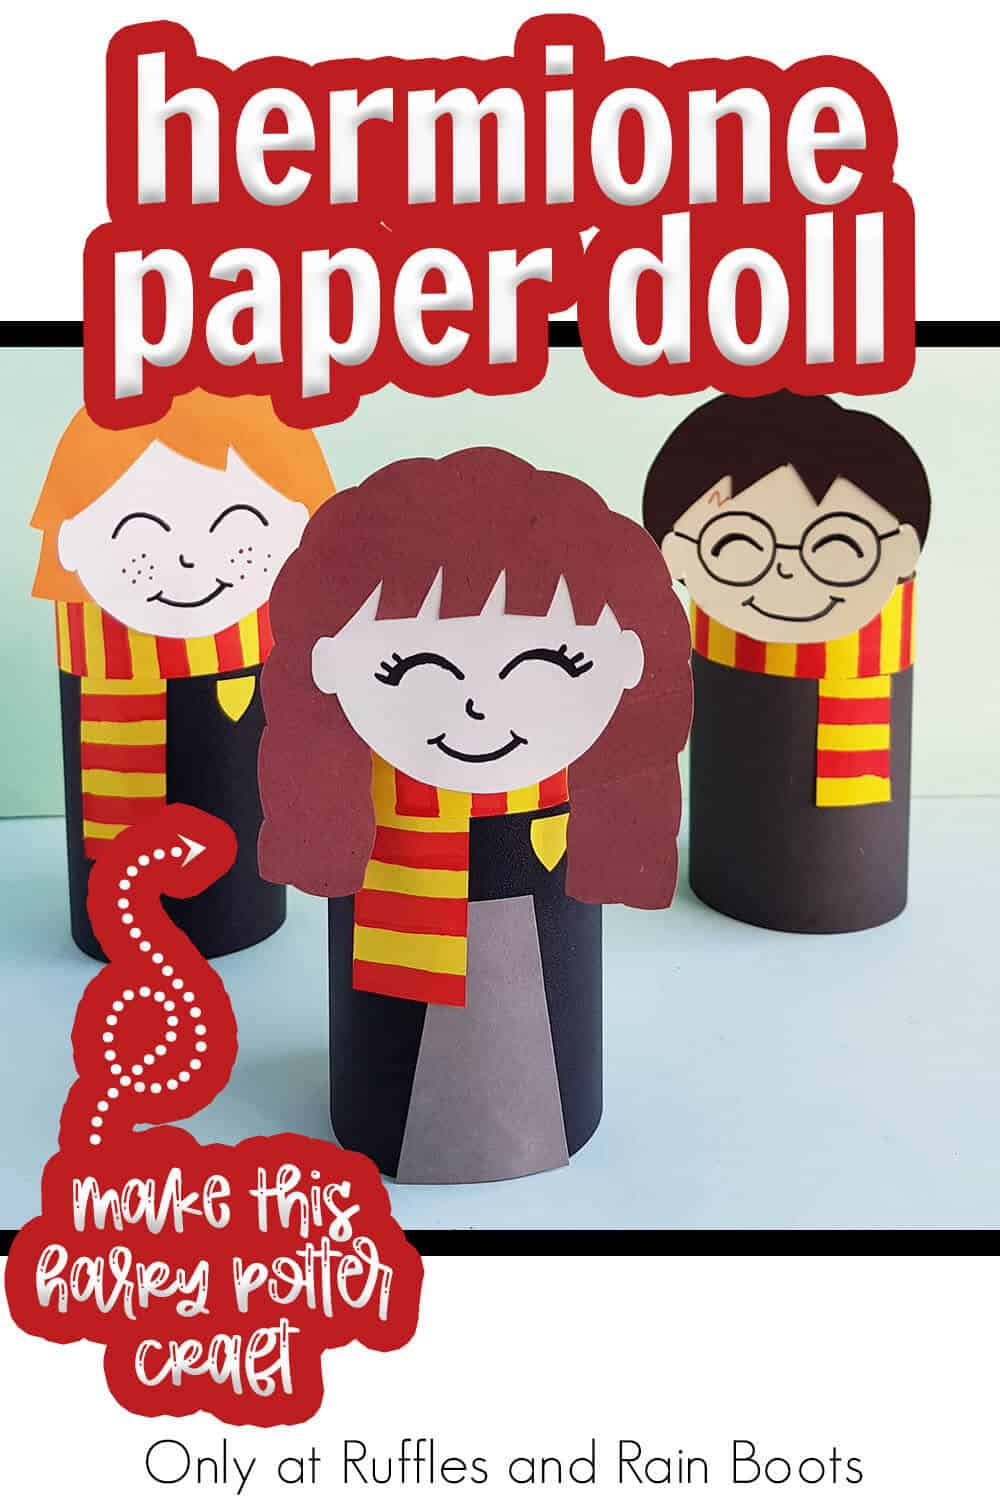 wizard paper craft hermione paper doll with text which reads hermione paper doll make this harry potter craft